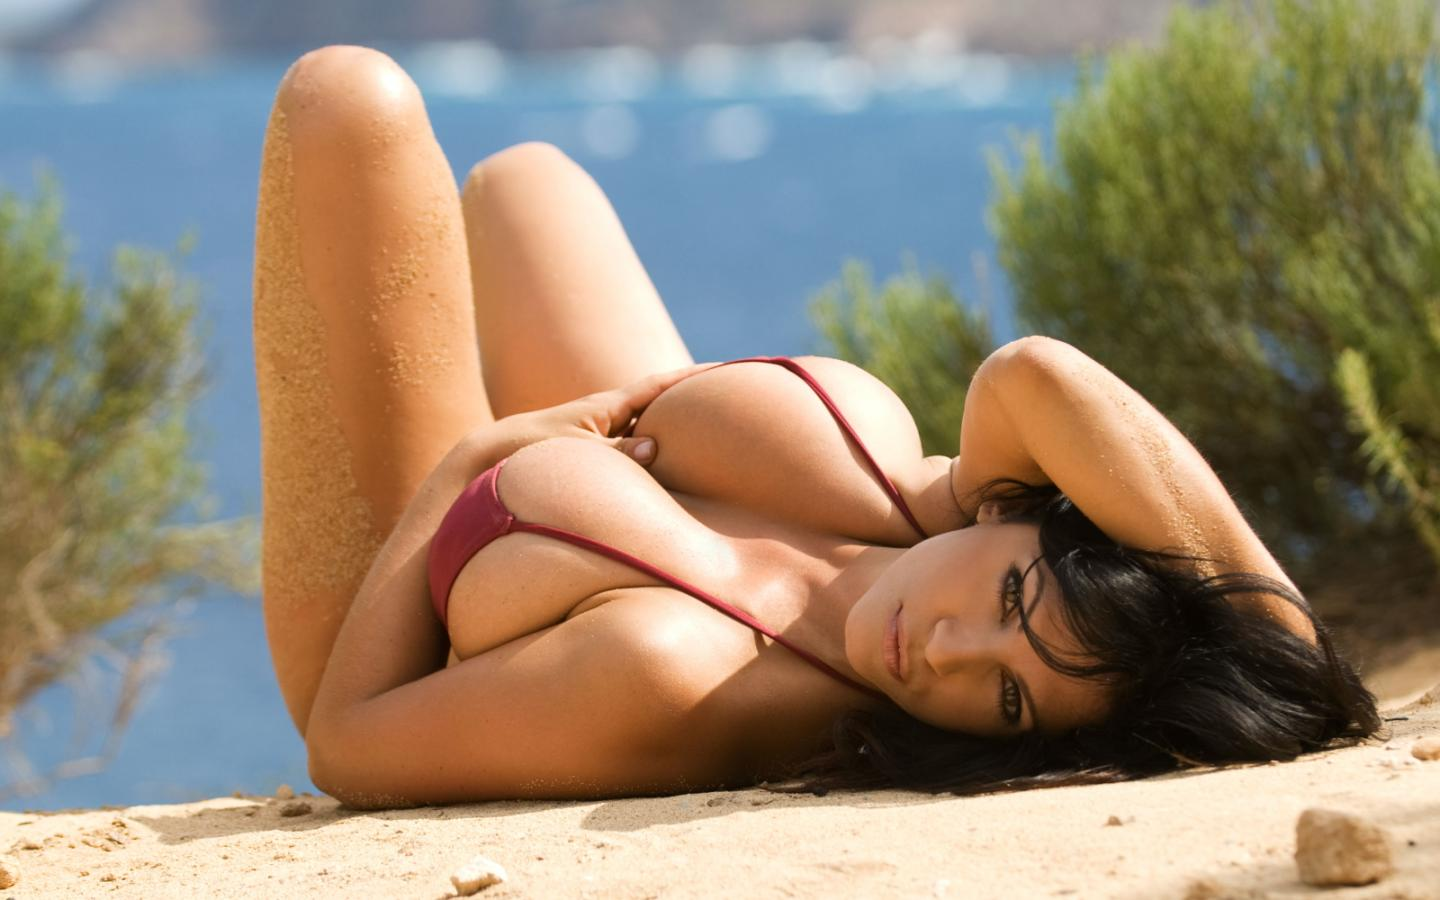 Hot Beaches HD Wallpapers